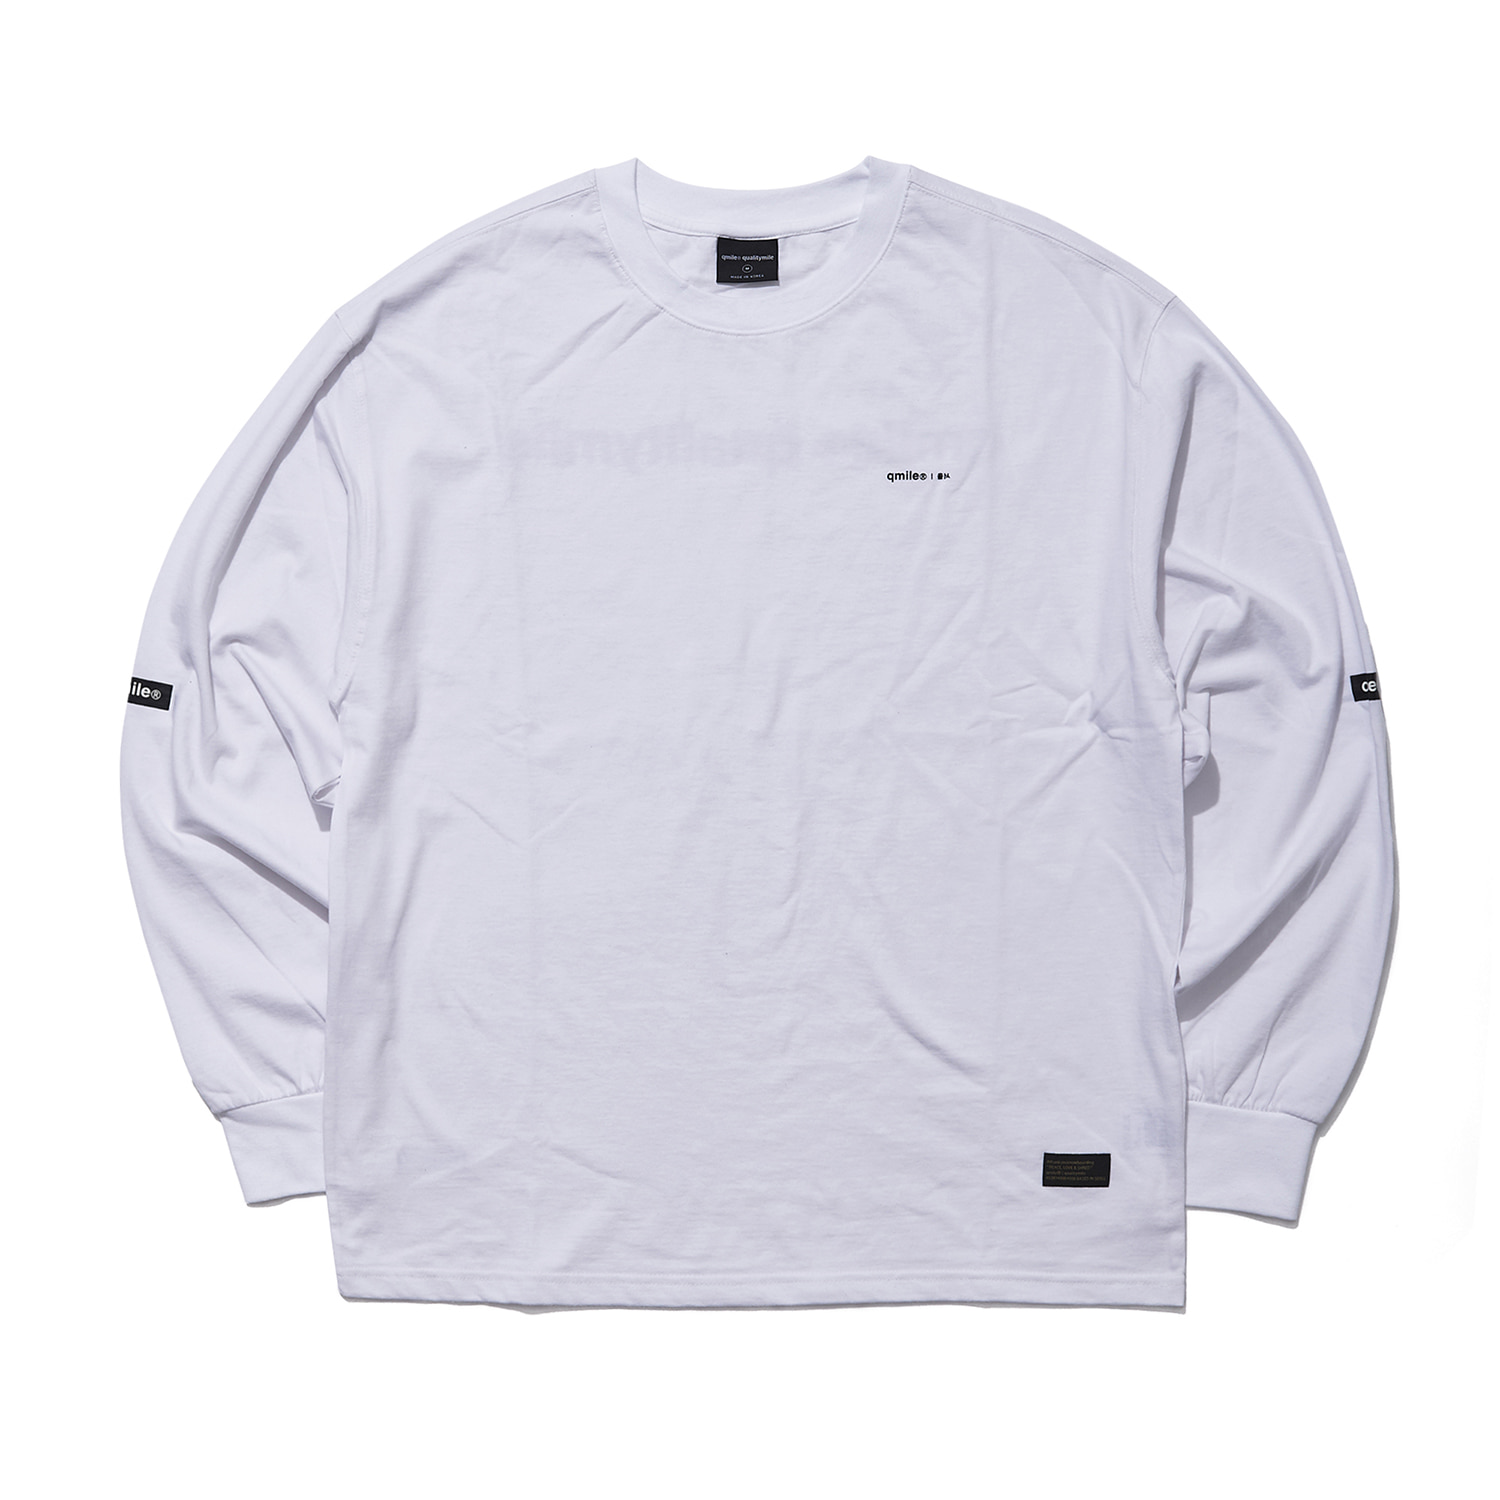 HG (Hangeul) long sleeve white